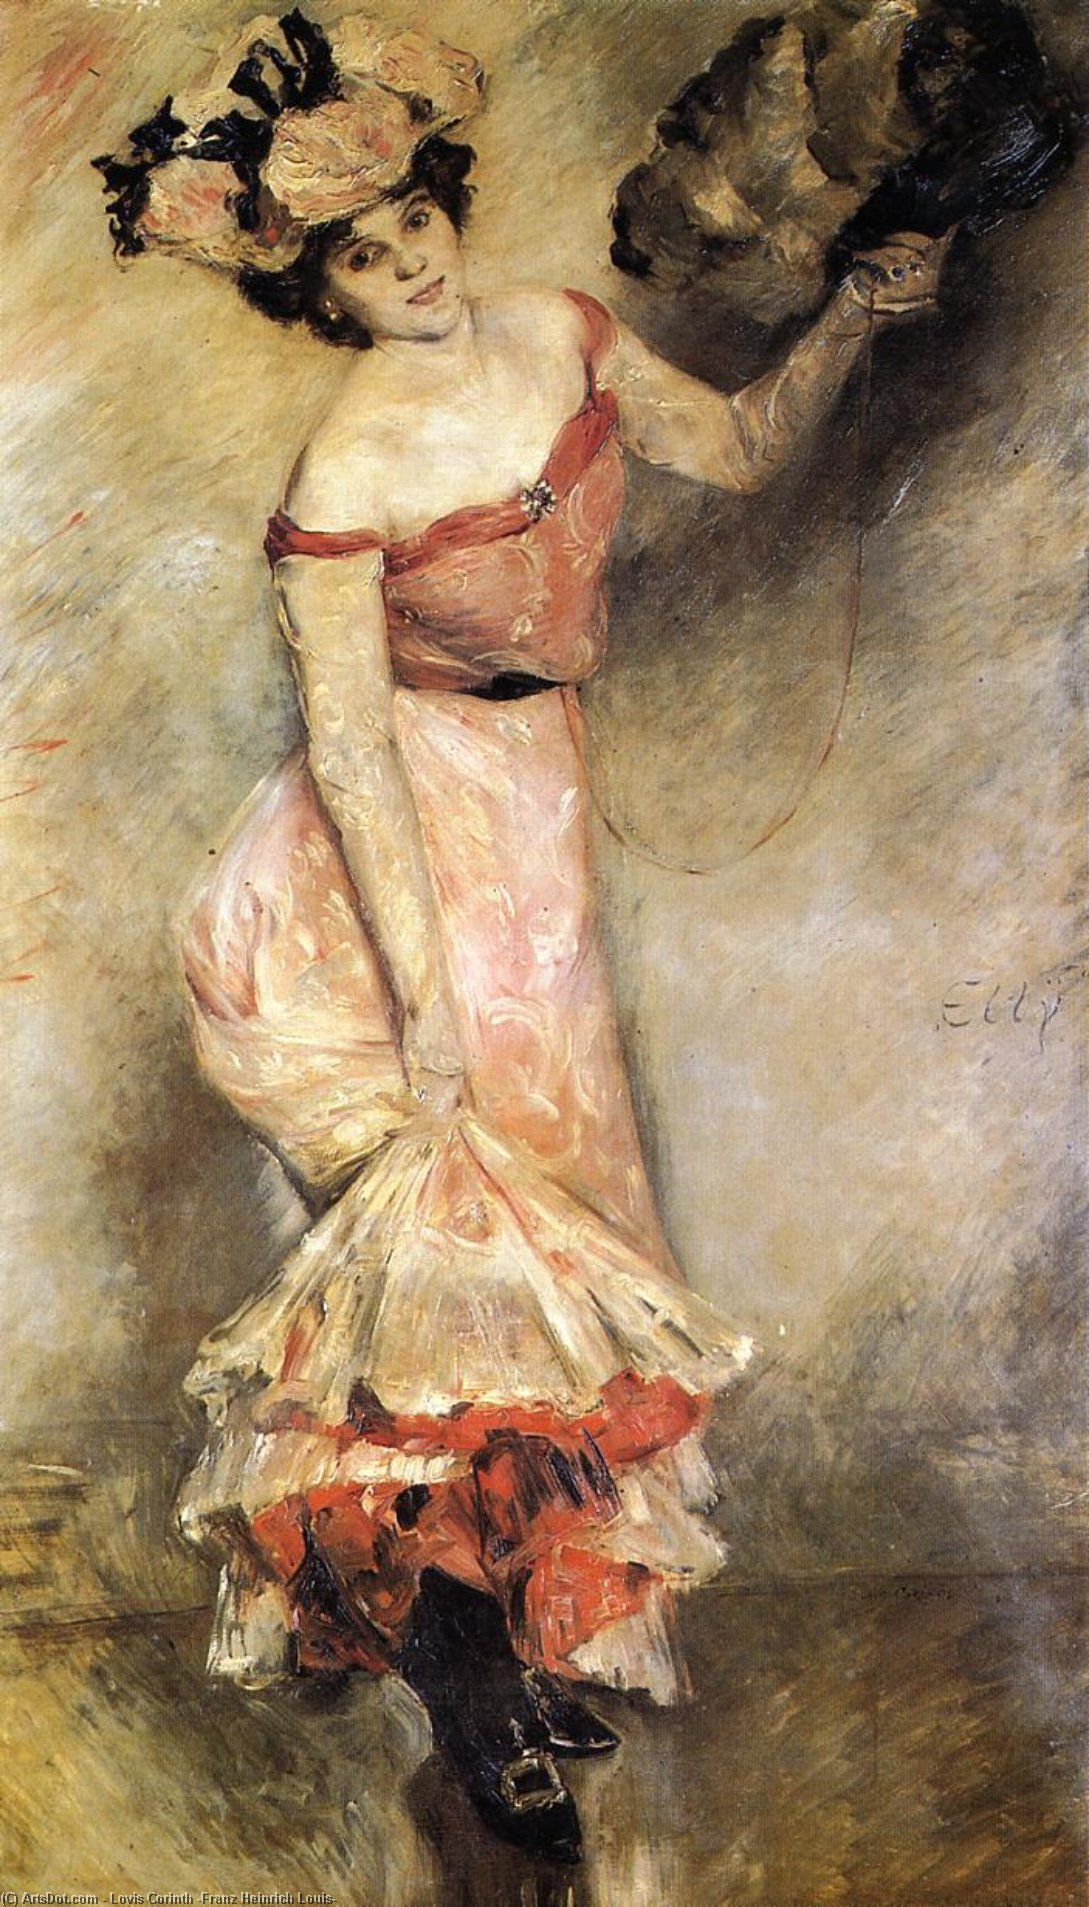 Portrait of Elly, Oil On Canvas by Lovis Corinth (Franz Heinrich Louis) (1858-1925, Netherlands)